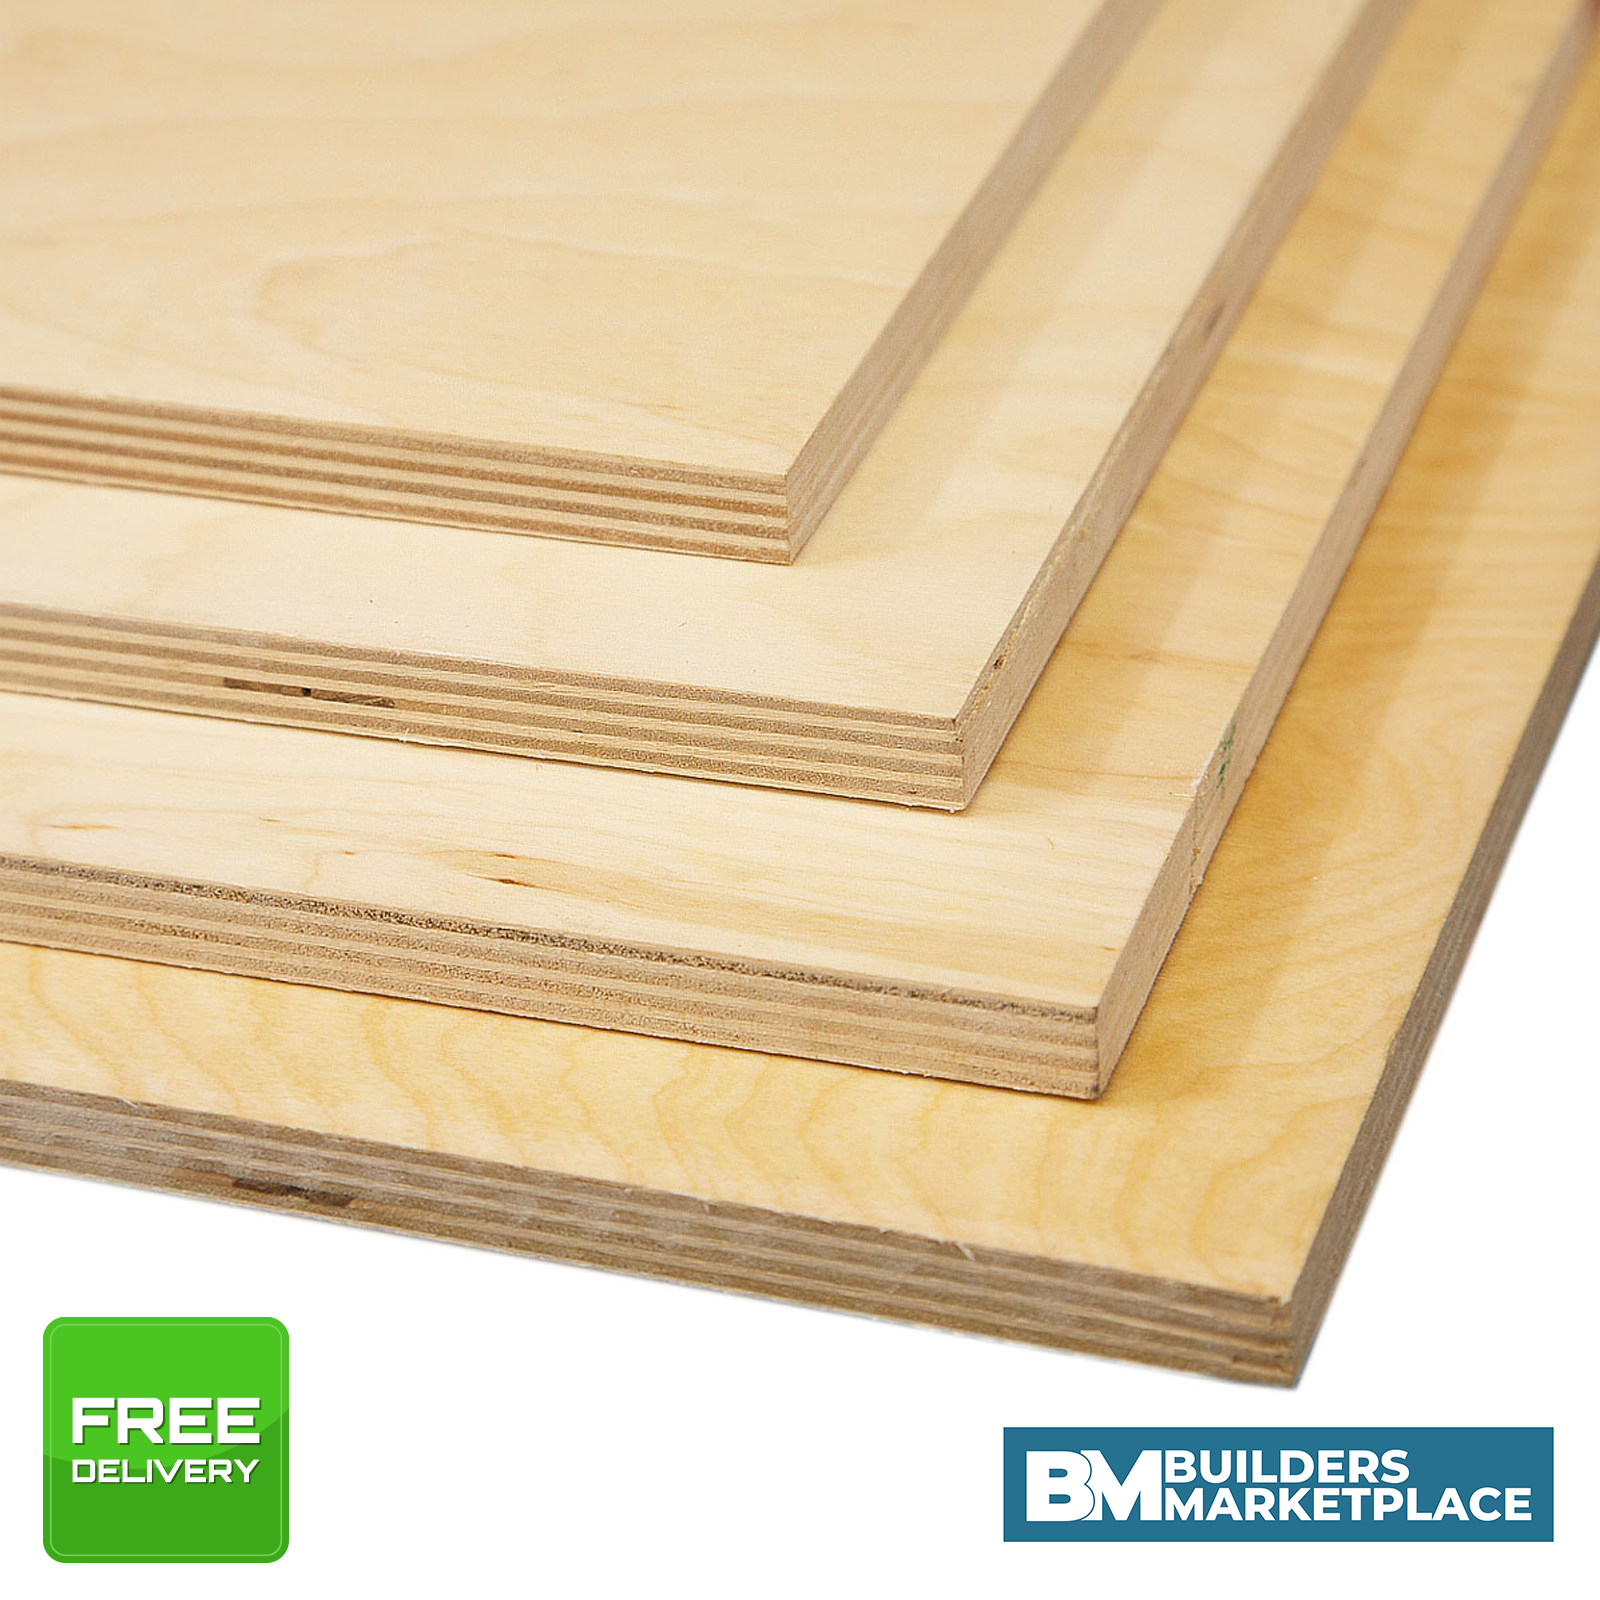 Details about Birch Plywood - WBP Birch Plywood Sheets Baltic Birch Ply  BB/CP BB/BB Grade